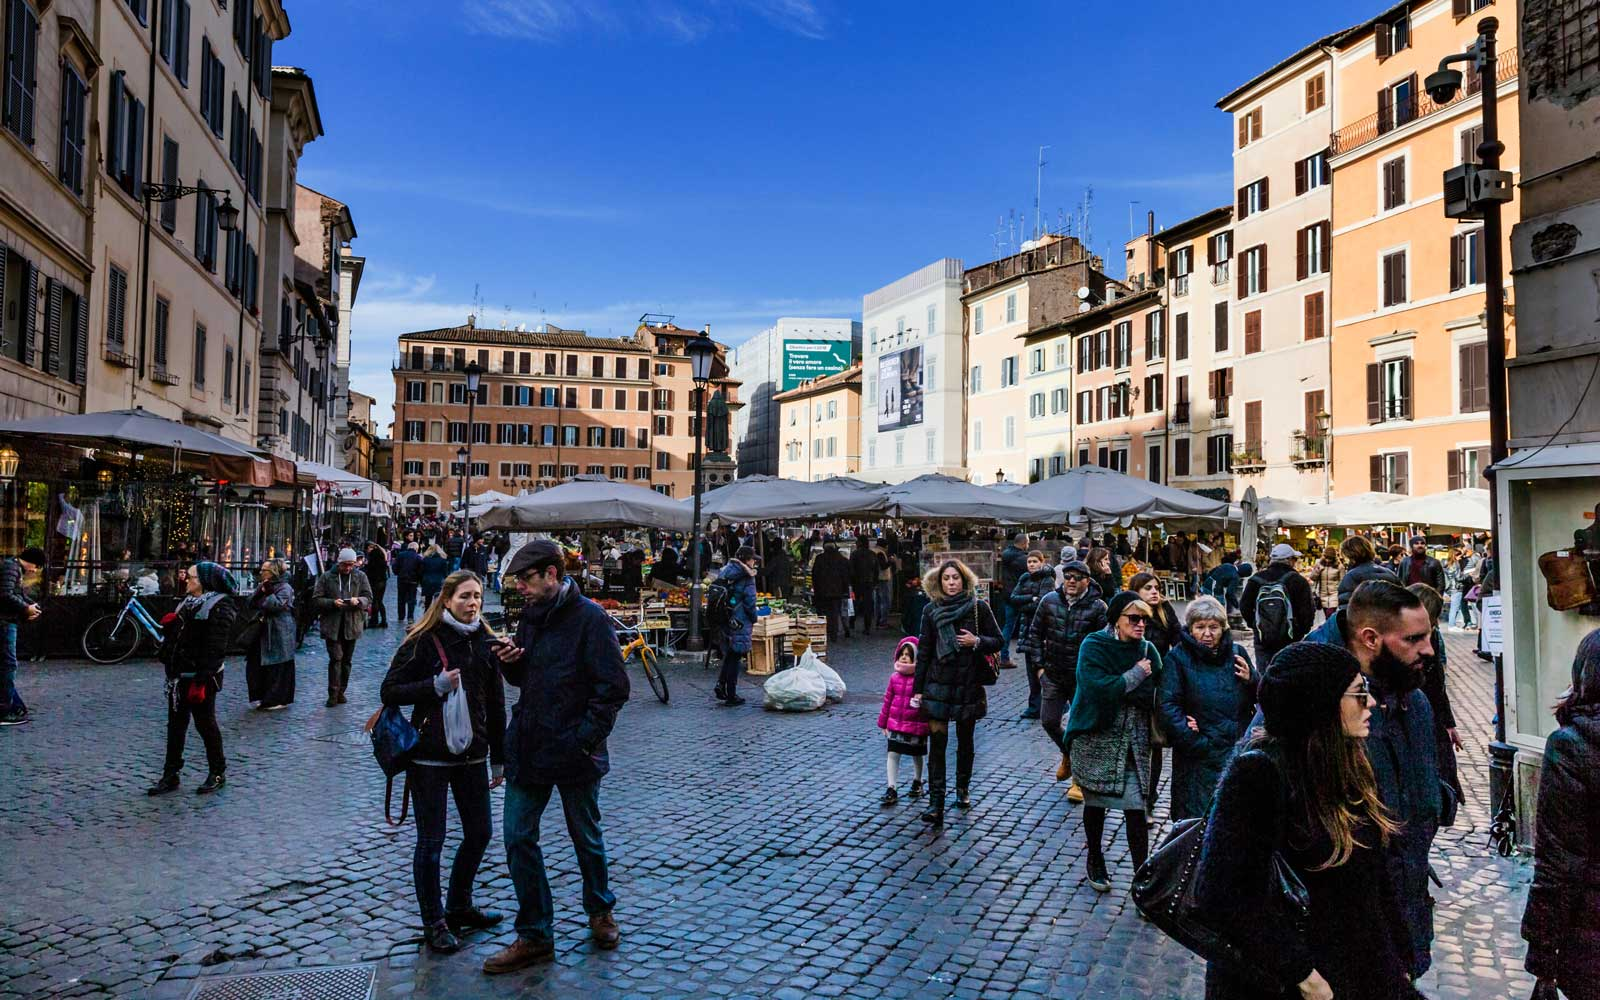 Campo de Fiori is a rectangular square south of Piazza Navona in Rome, Italy, at the border between rione Parione and rione Regola.